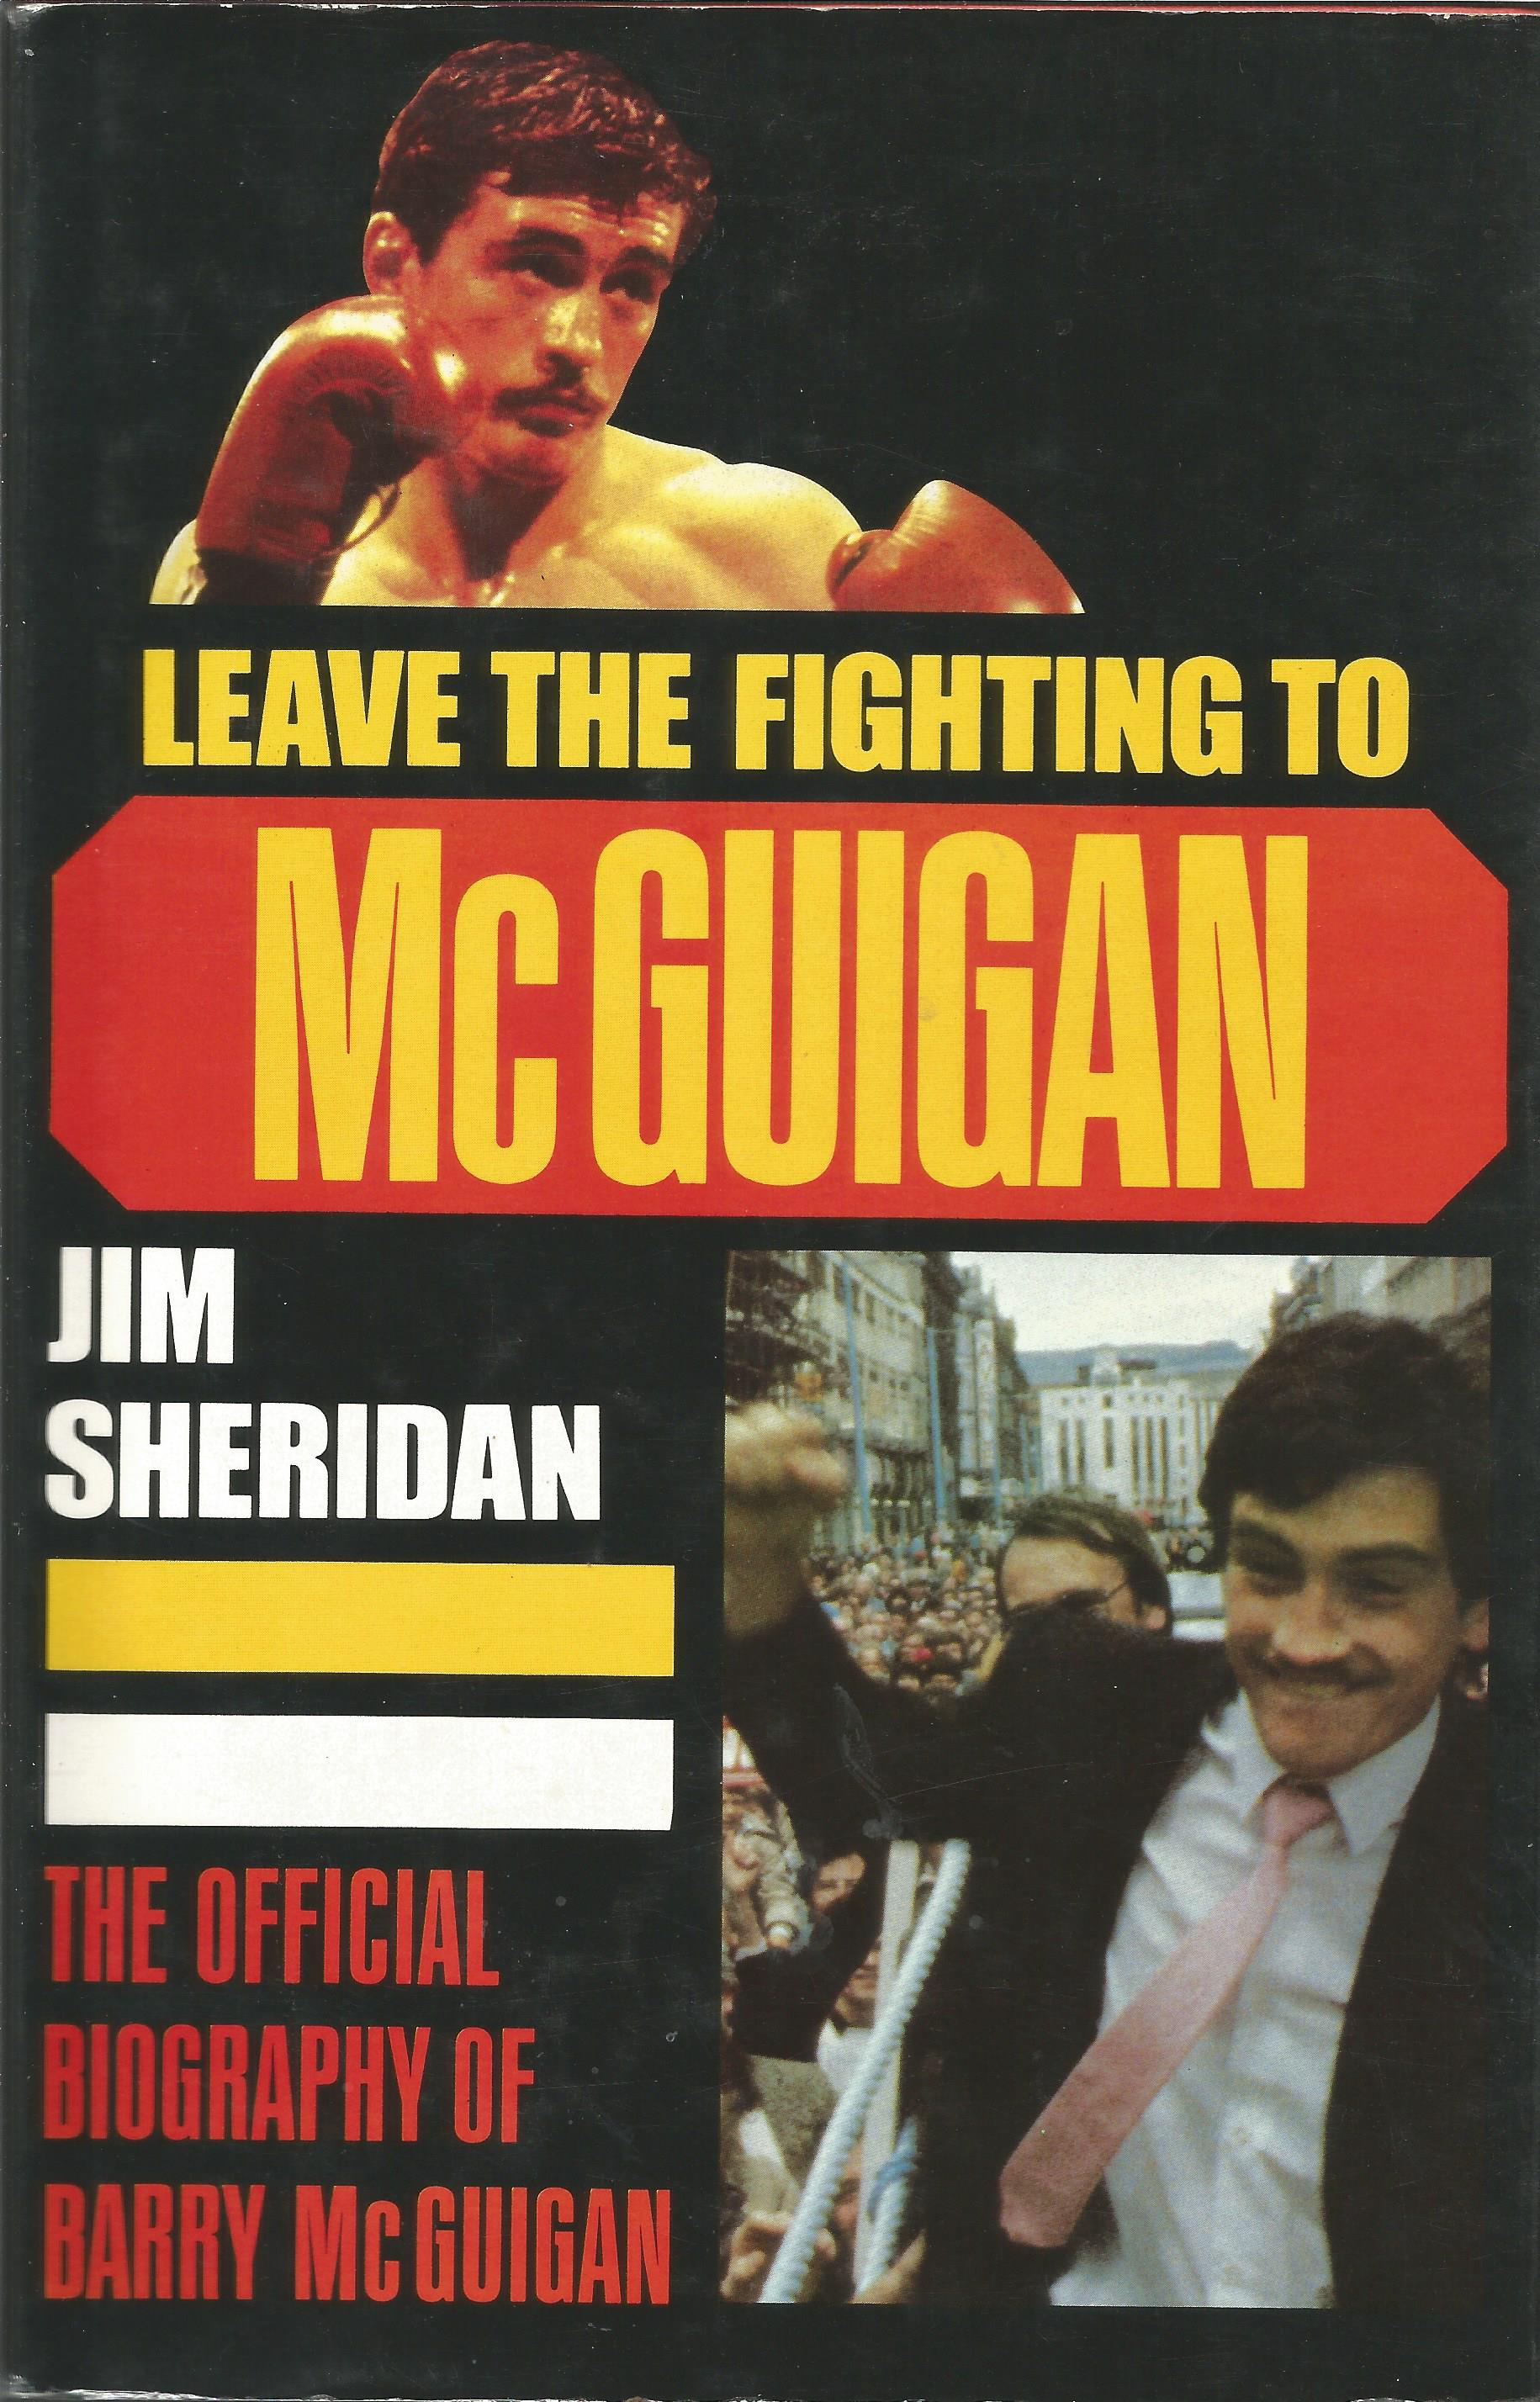 Lot 56 - Boxing Barry McGuigan signed biography wrote by Jim Sheridan Leave the Fighting to McGuigan.